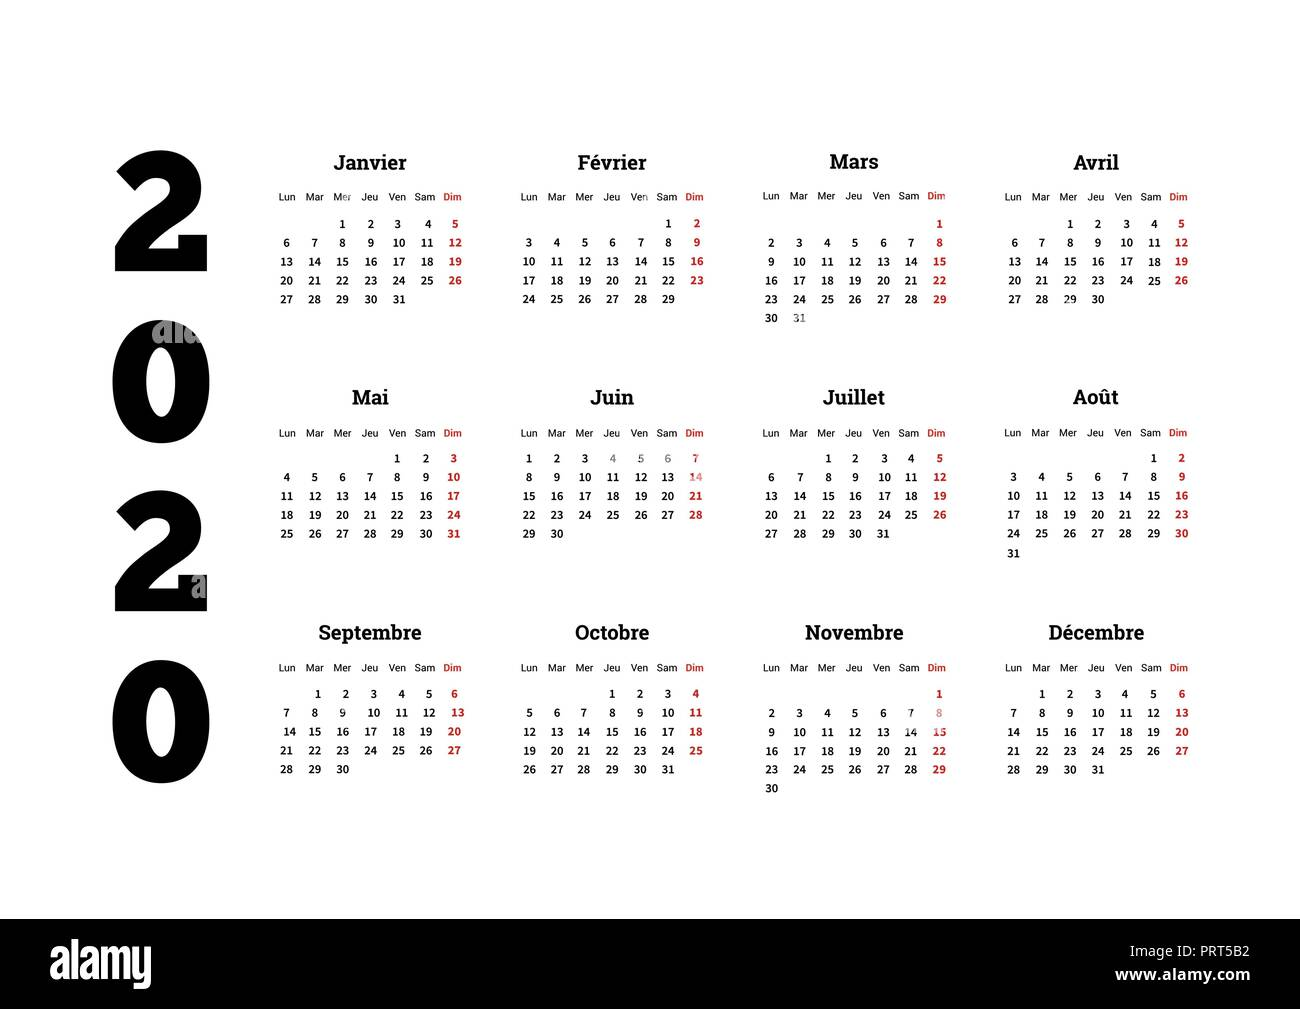 French Calendar 2020 2020 year simple calendar on french language, isolated on white